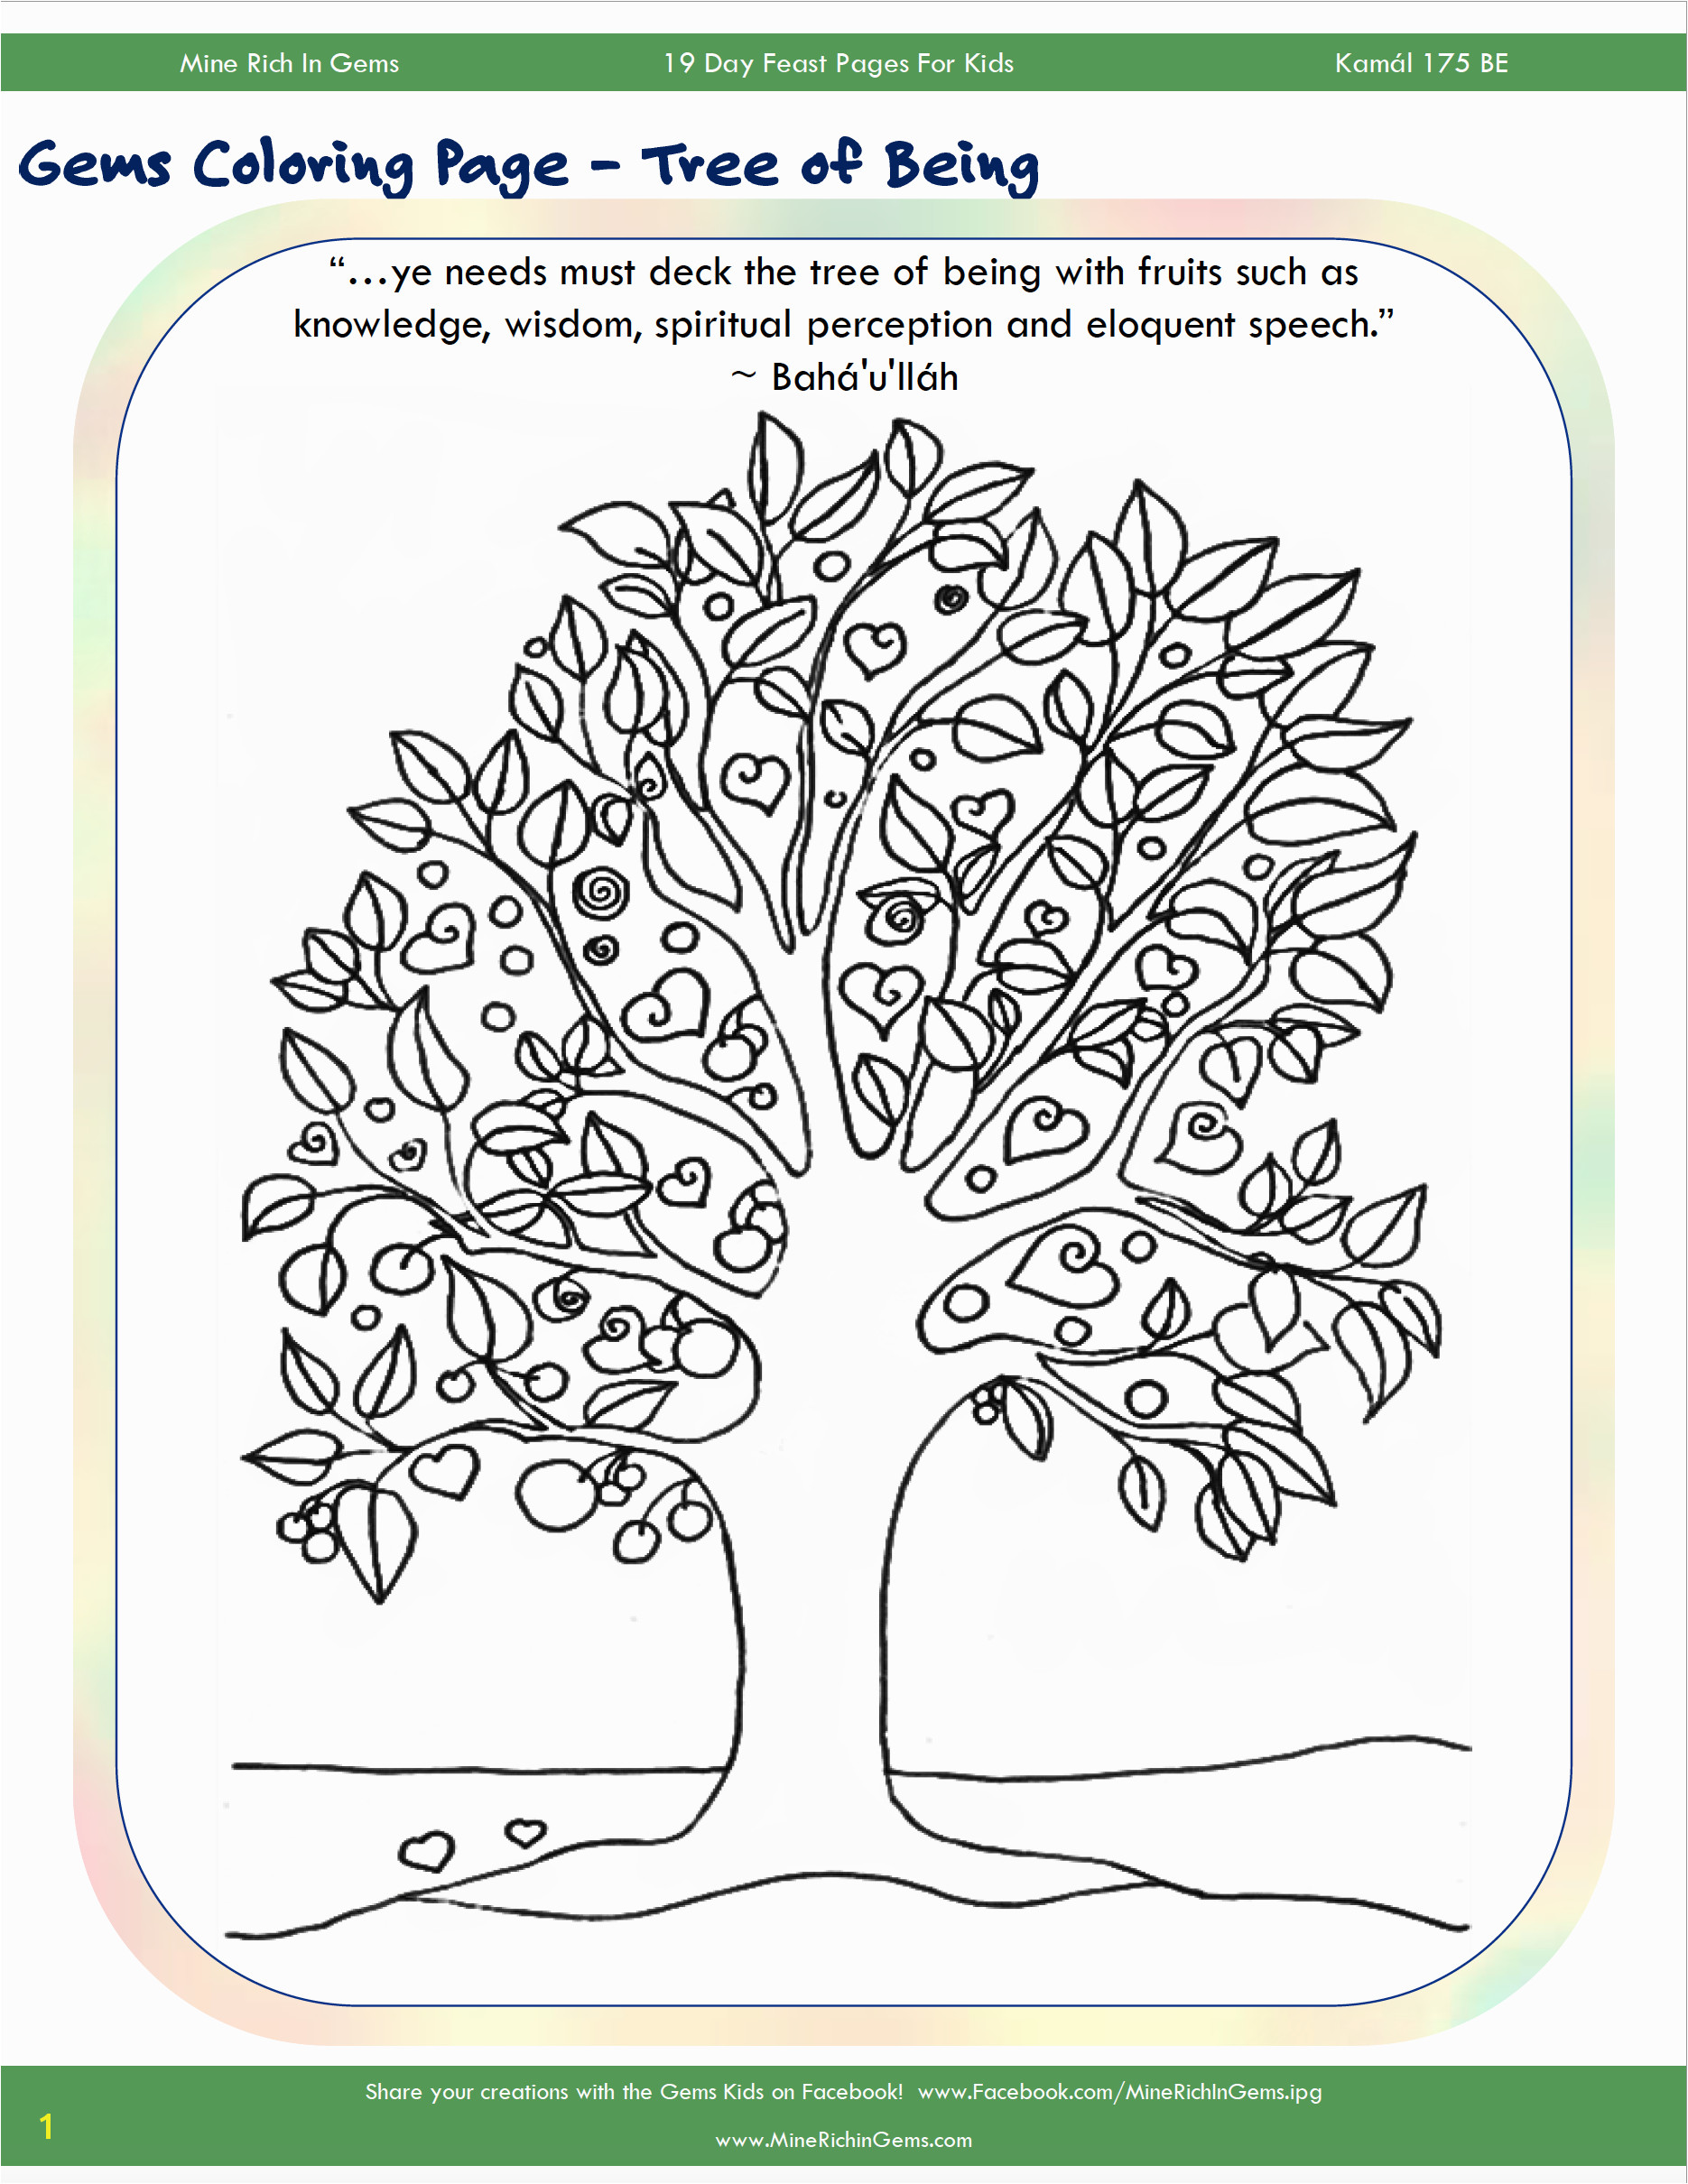 Coloring Page from Mine Rich in Gems for the 19 Day Feast of Kamál Perfection